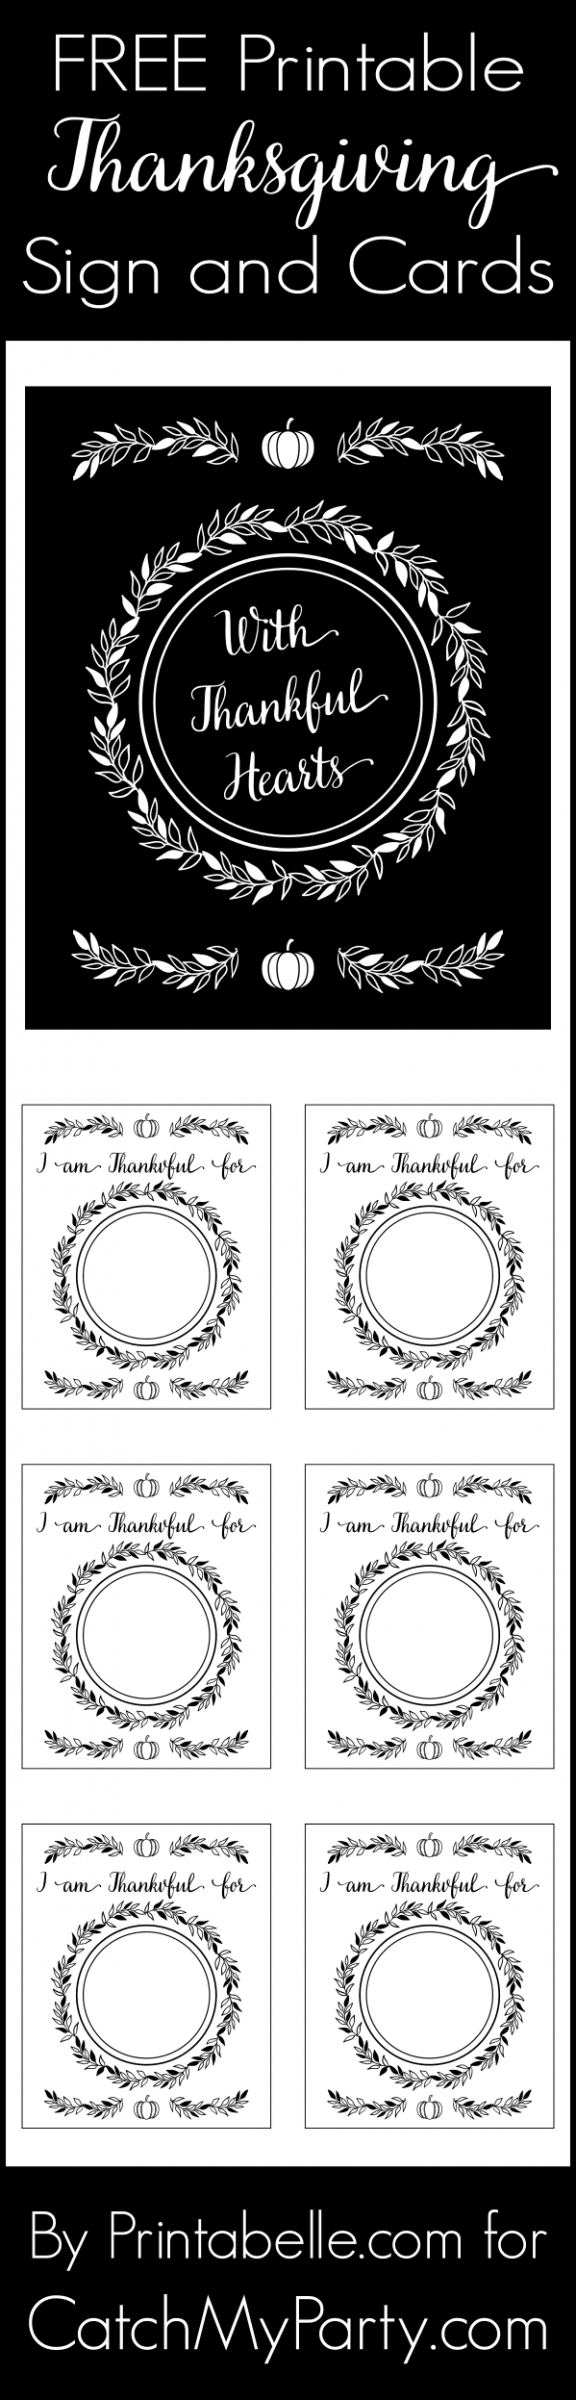 "Free Printable ""With Thankful Hearts"" Thanksgiving Sign and Cards. See more free printables for Thanksgiving at CatchMyParty.com."